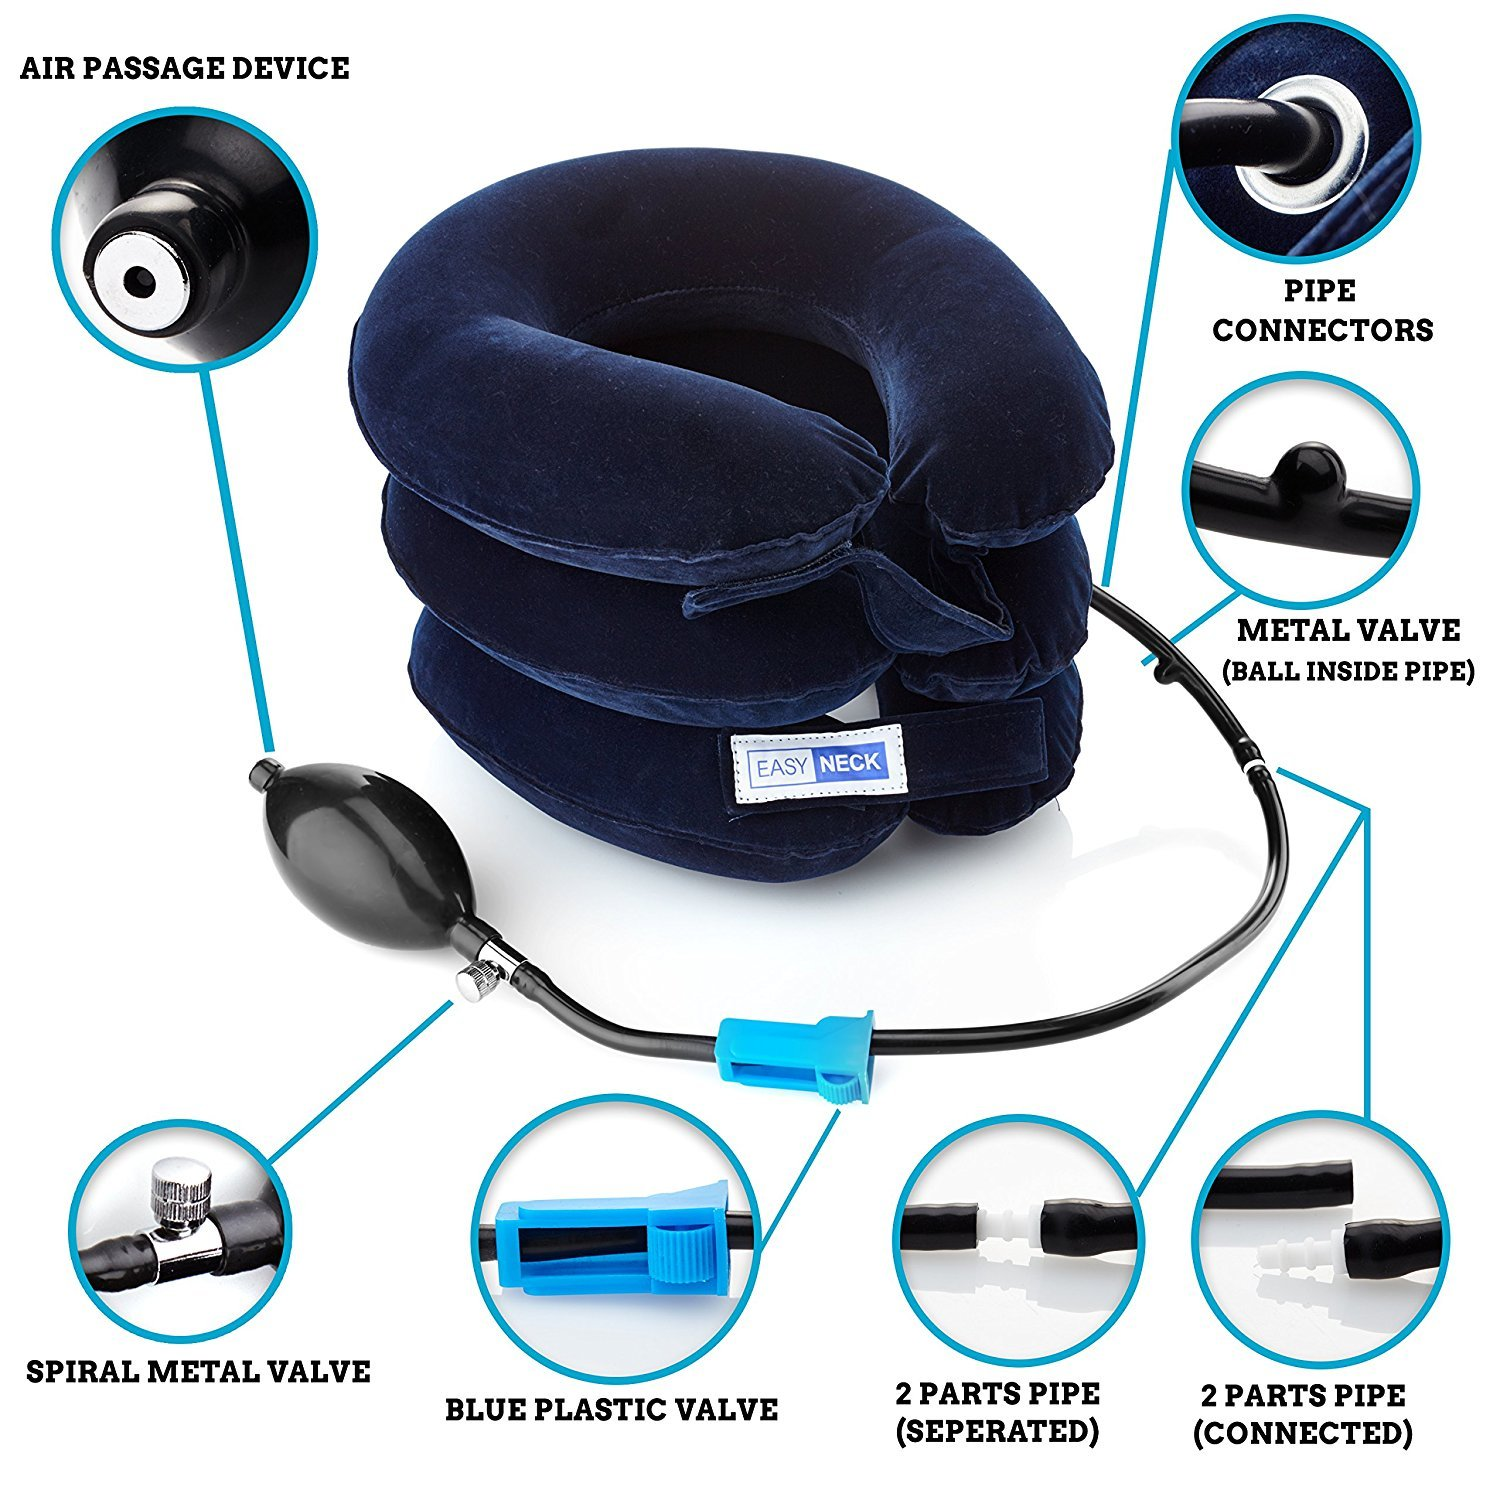 Inflatable Cervical Neck Traction Device - Improve Spine Alignment to Reduce Neck Pain - EasyNeck® Cervical Collar Adjustable - Blue